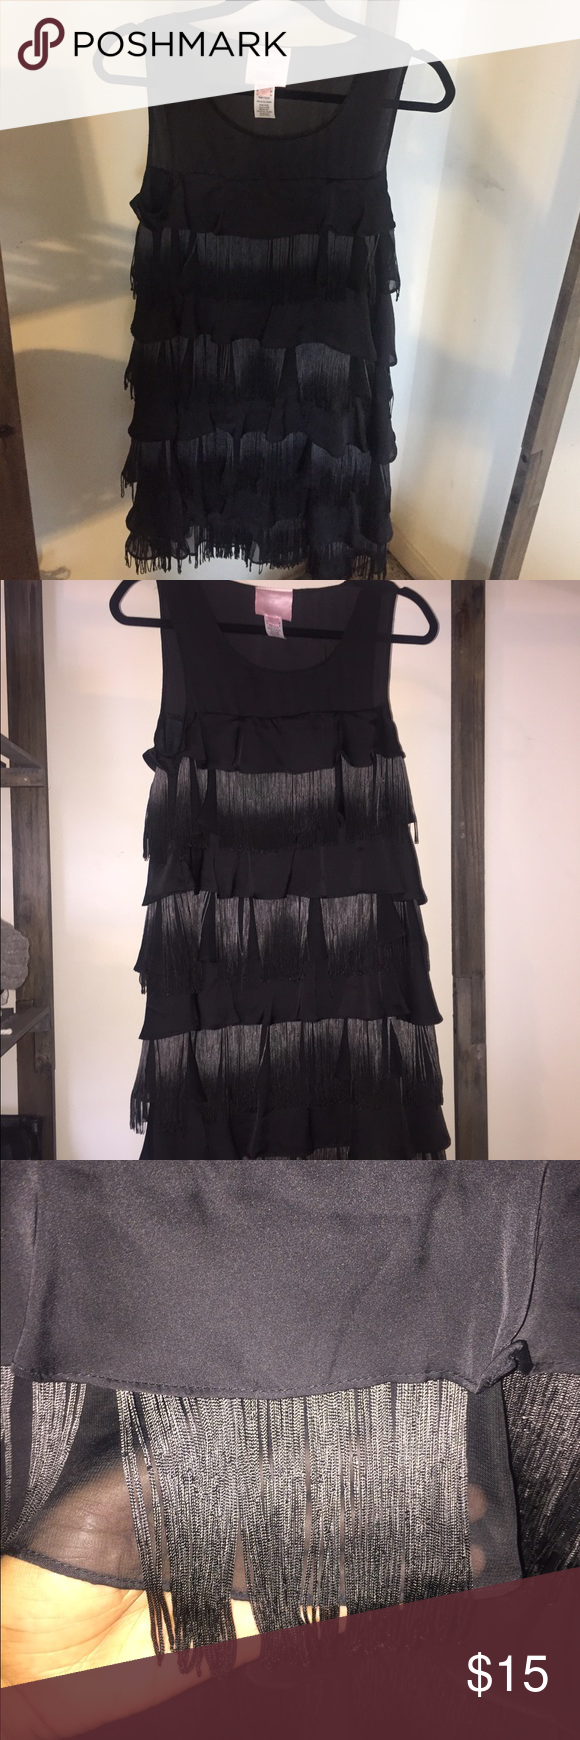 Romeo + Juliet Couture black fringe dress Black fringe and ruffle dress by Romeo + Juliet Couture. Size M. Ombre fringe from a greyish/silver to black. Cute dress for a party or whatever you choose! Side zipper. Romeo & Juliet Couture Dresses Mini